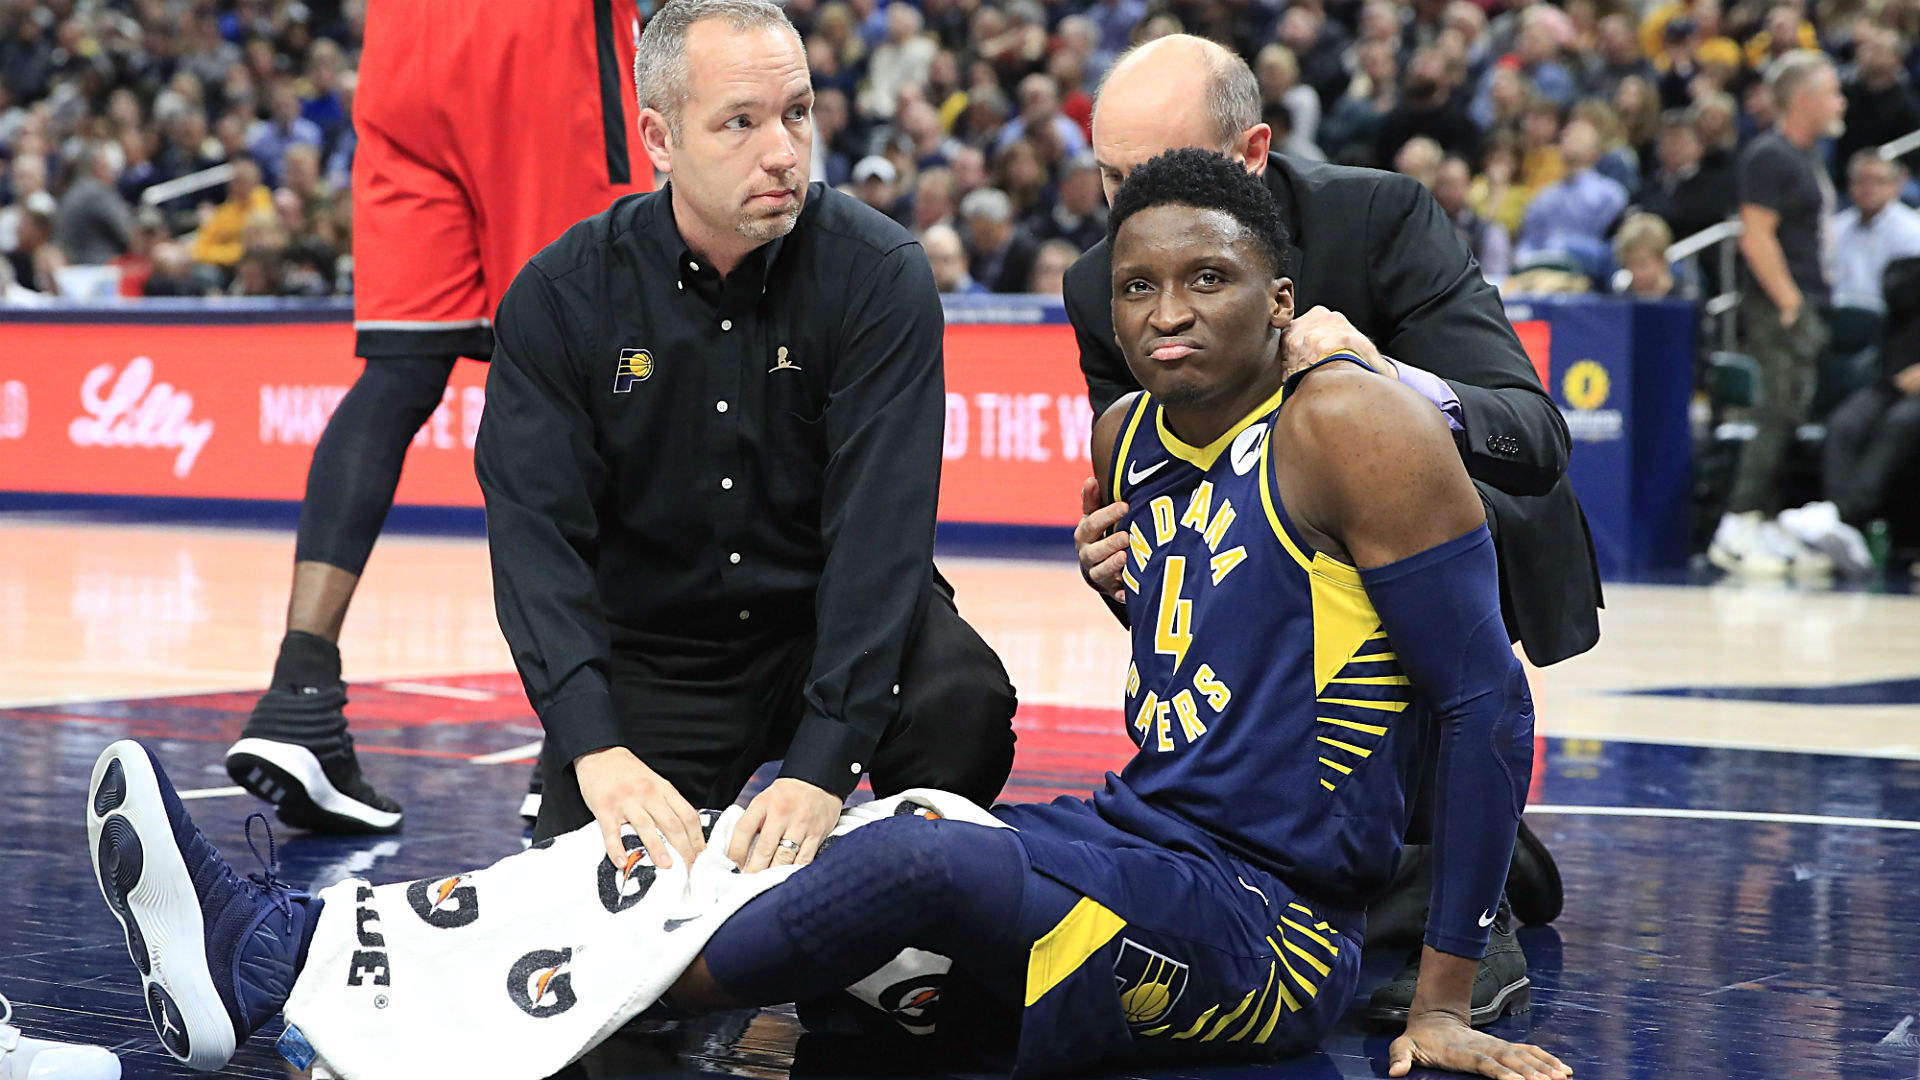 Pacers star Victor Oladipo suffers 'serious' knee injury that could end season